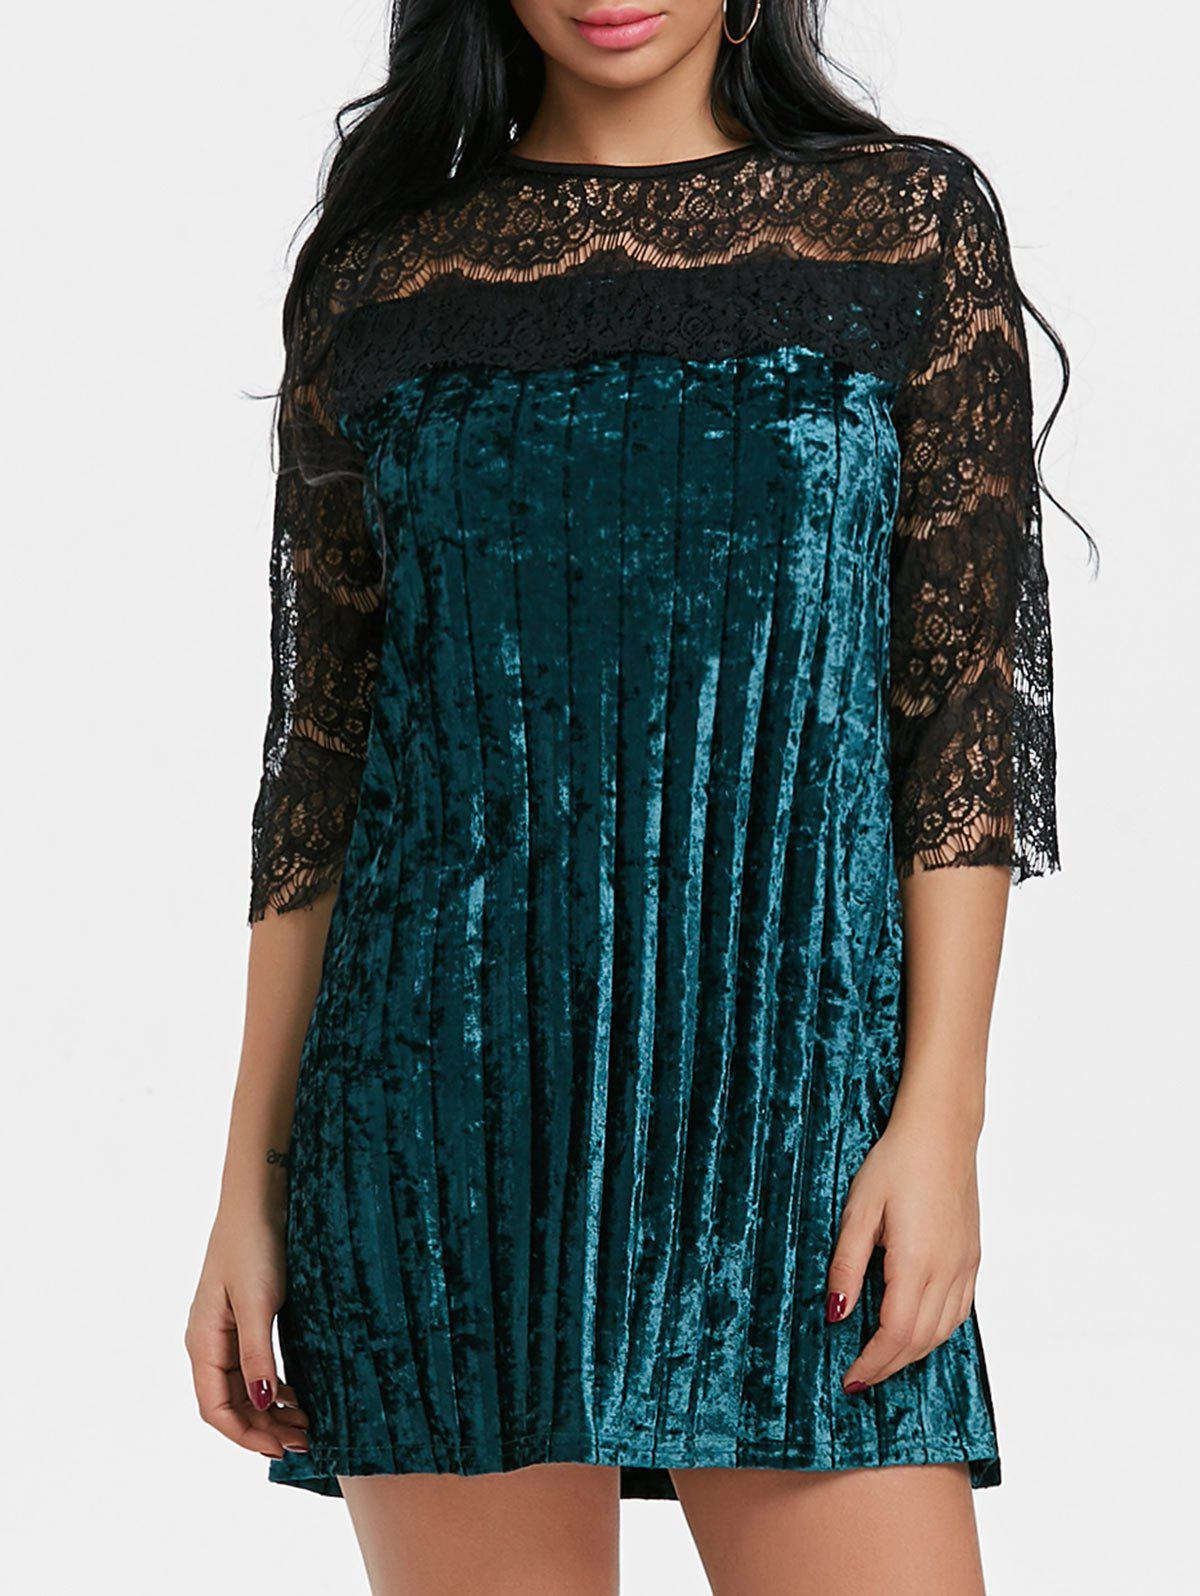 Pleated Lace Panel Velvet Dress - GREEN S